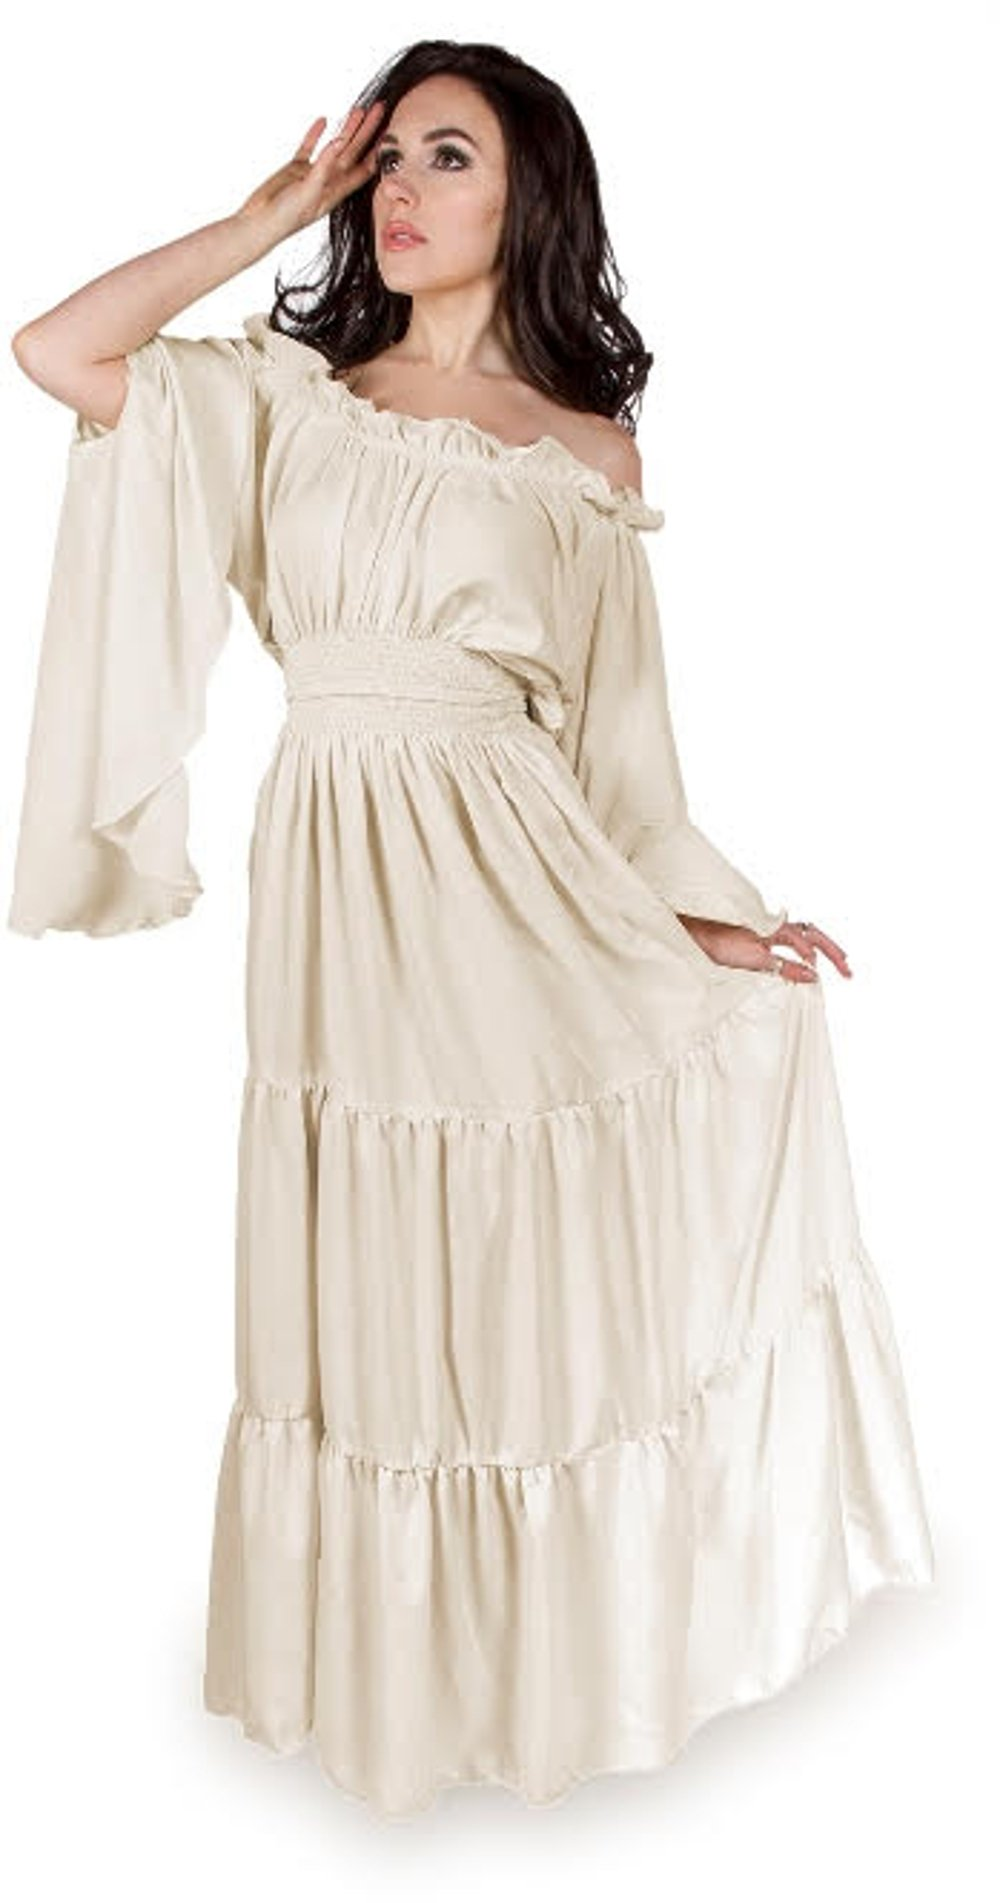 Renaissance Medieval Costume Mythic Mystic Forest Sword Mistress Chemise Dress OS (Cream)